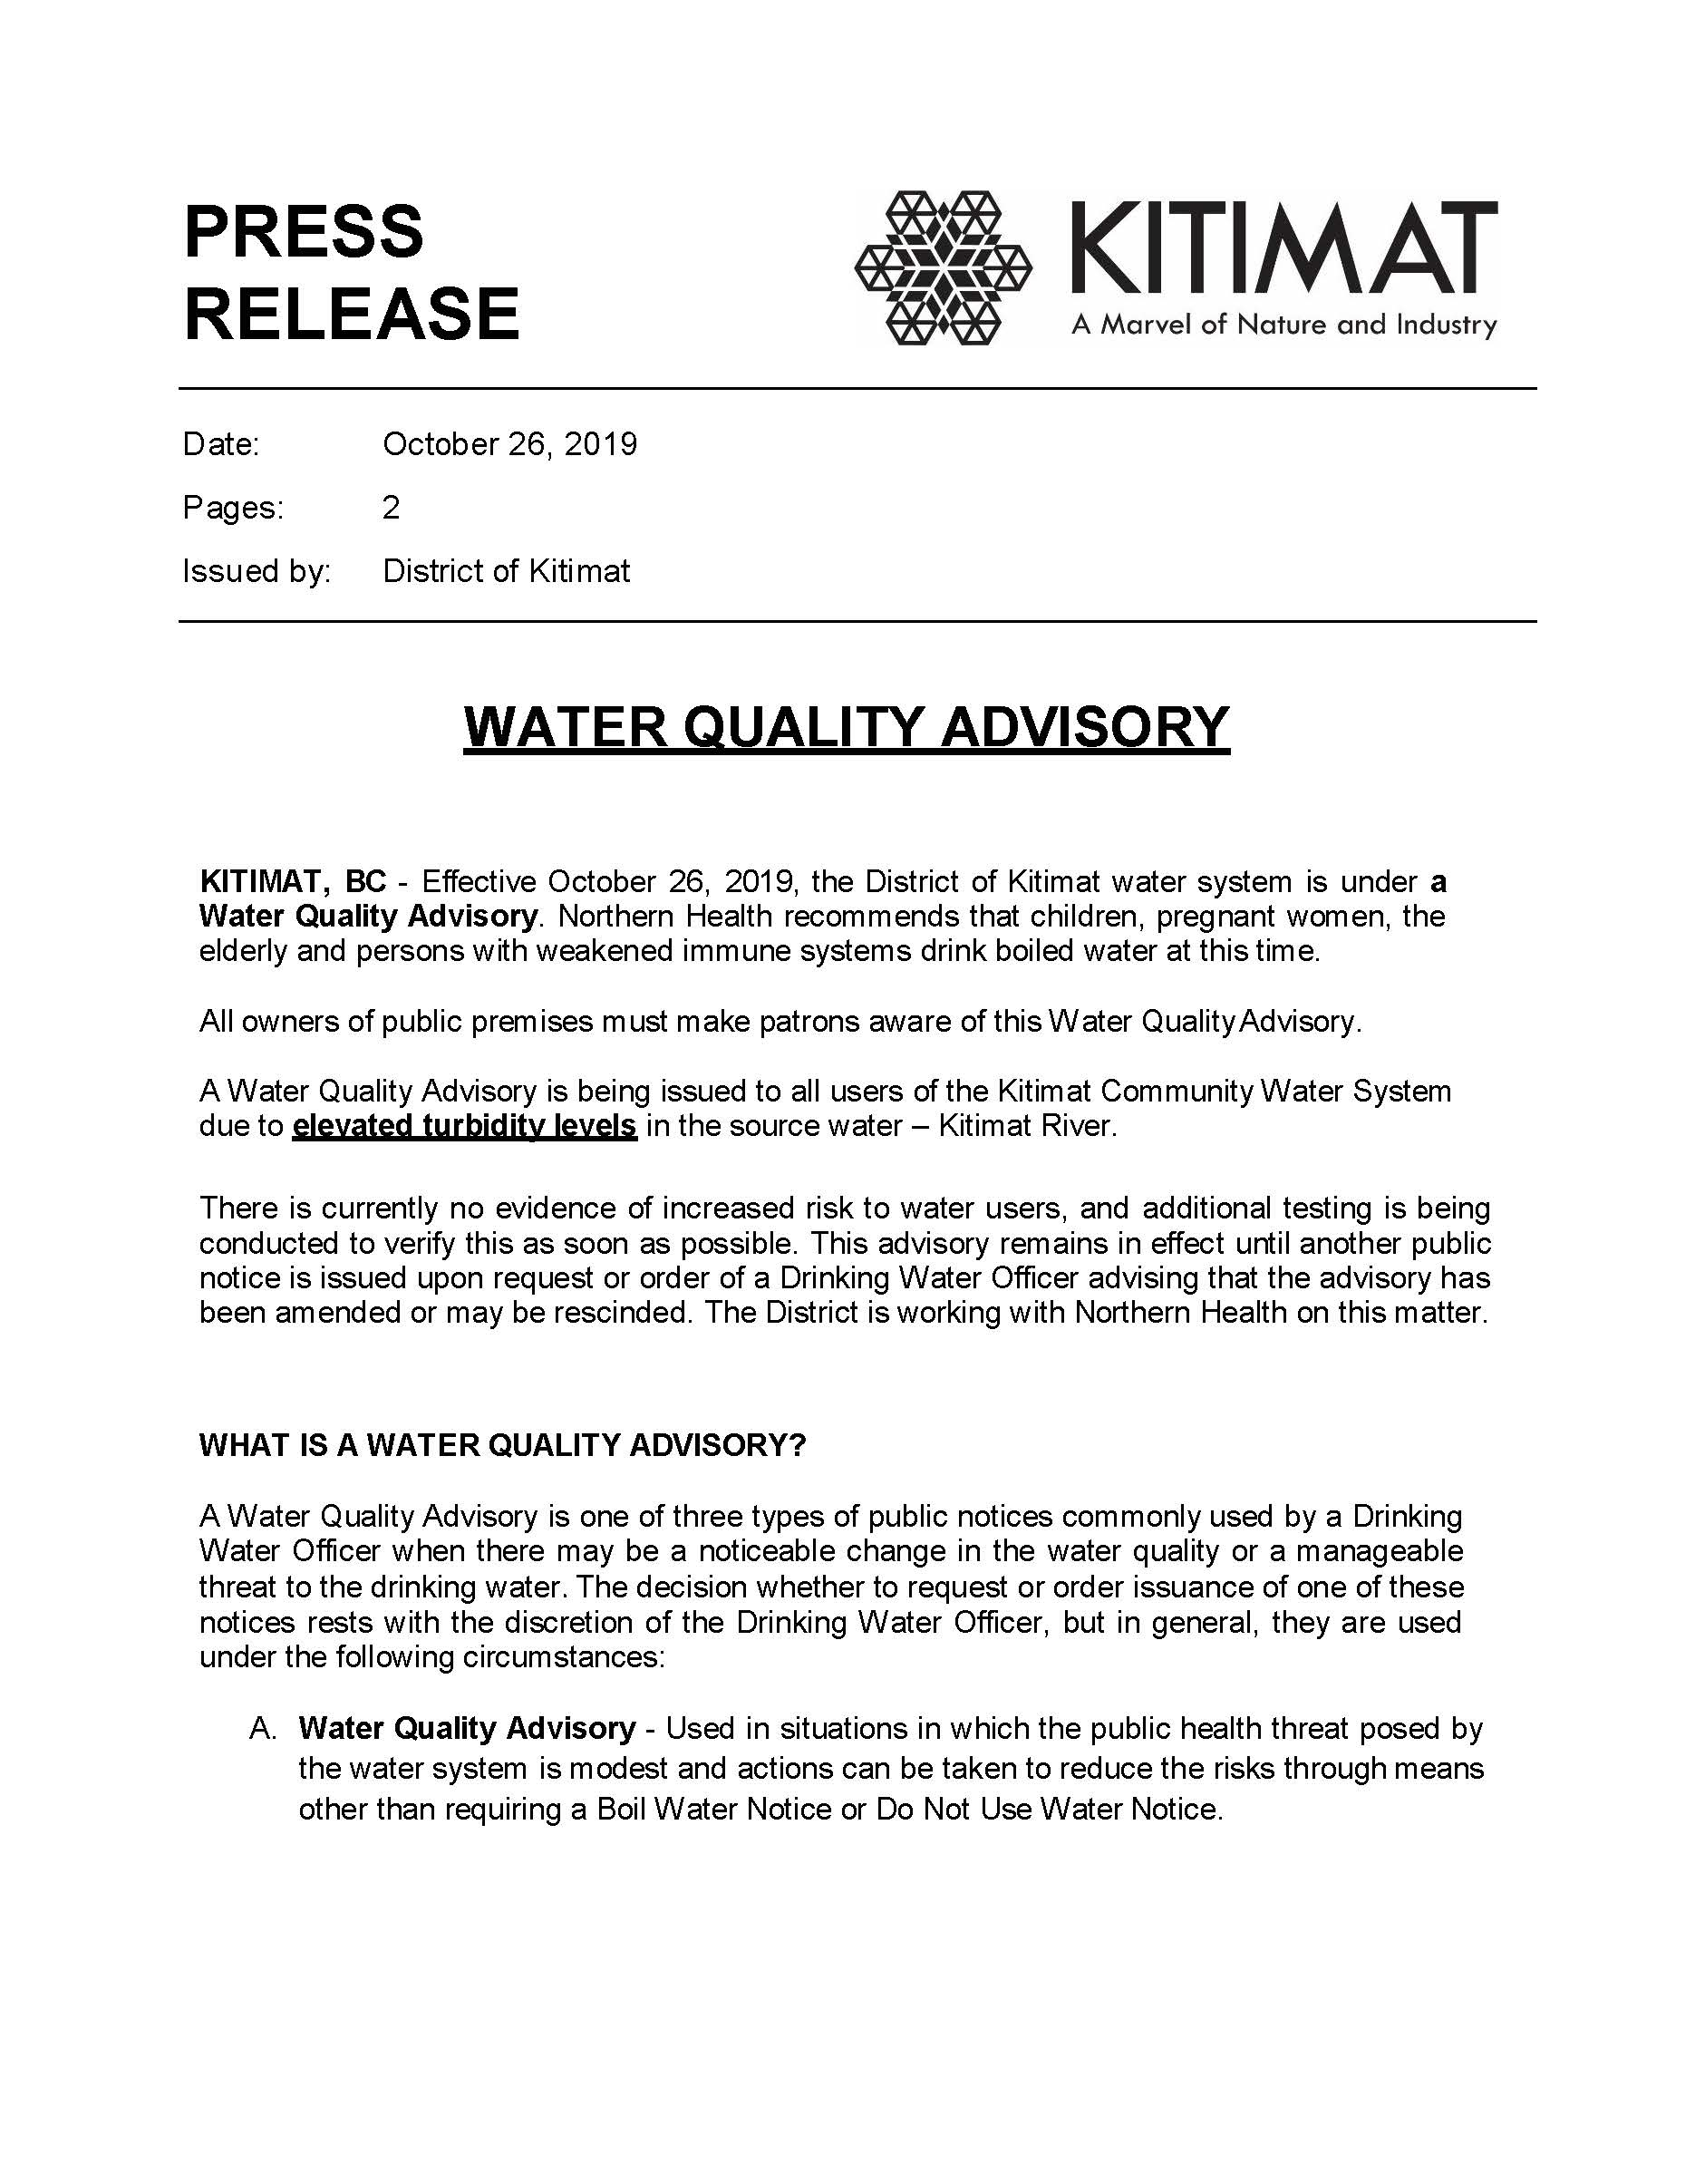 Water Quality Advisory, page 1 of 2